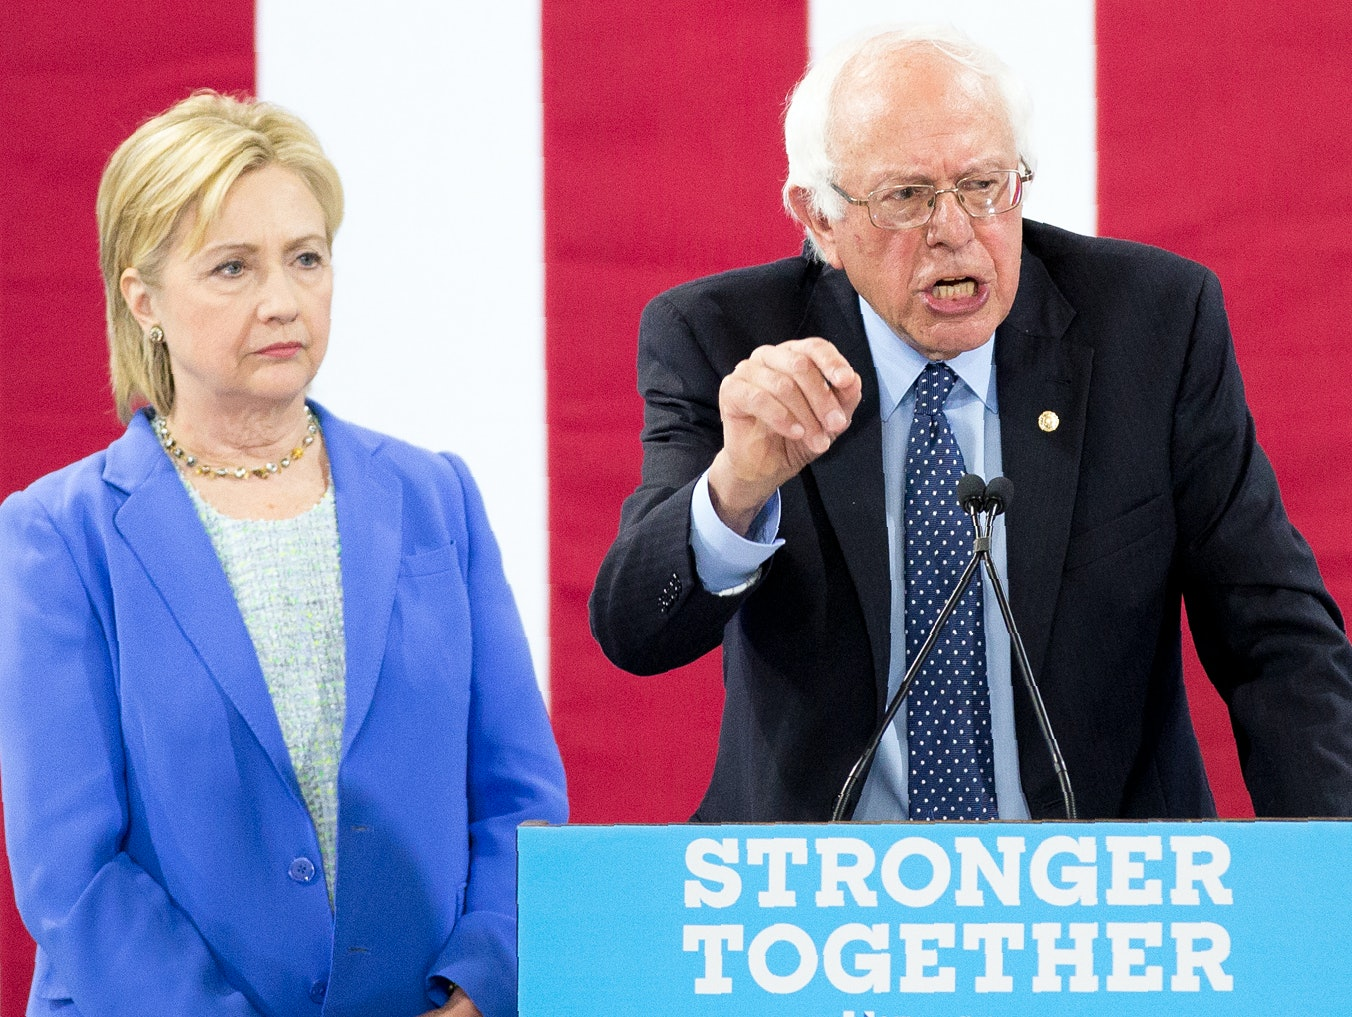 Leaked: DNC official wanted to smear Sanders' religion (or lack thereof)